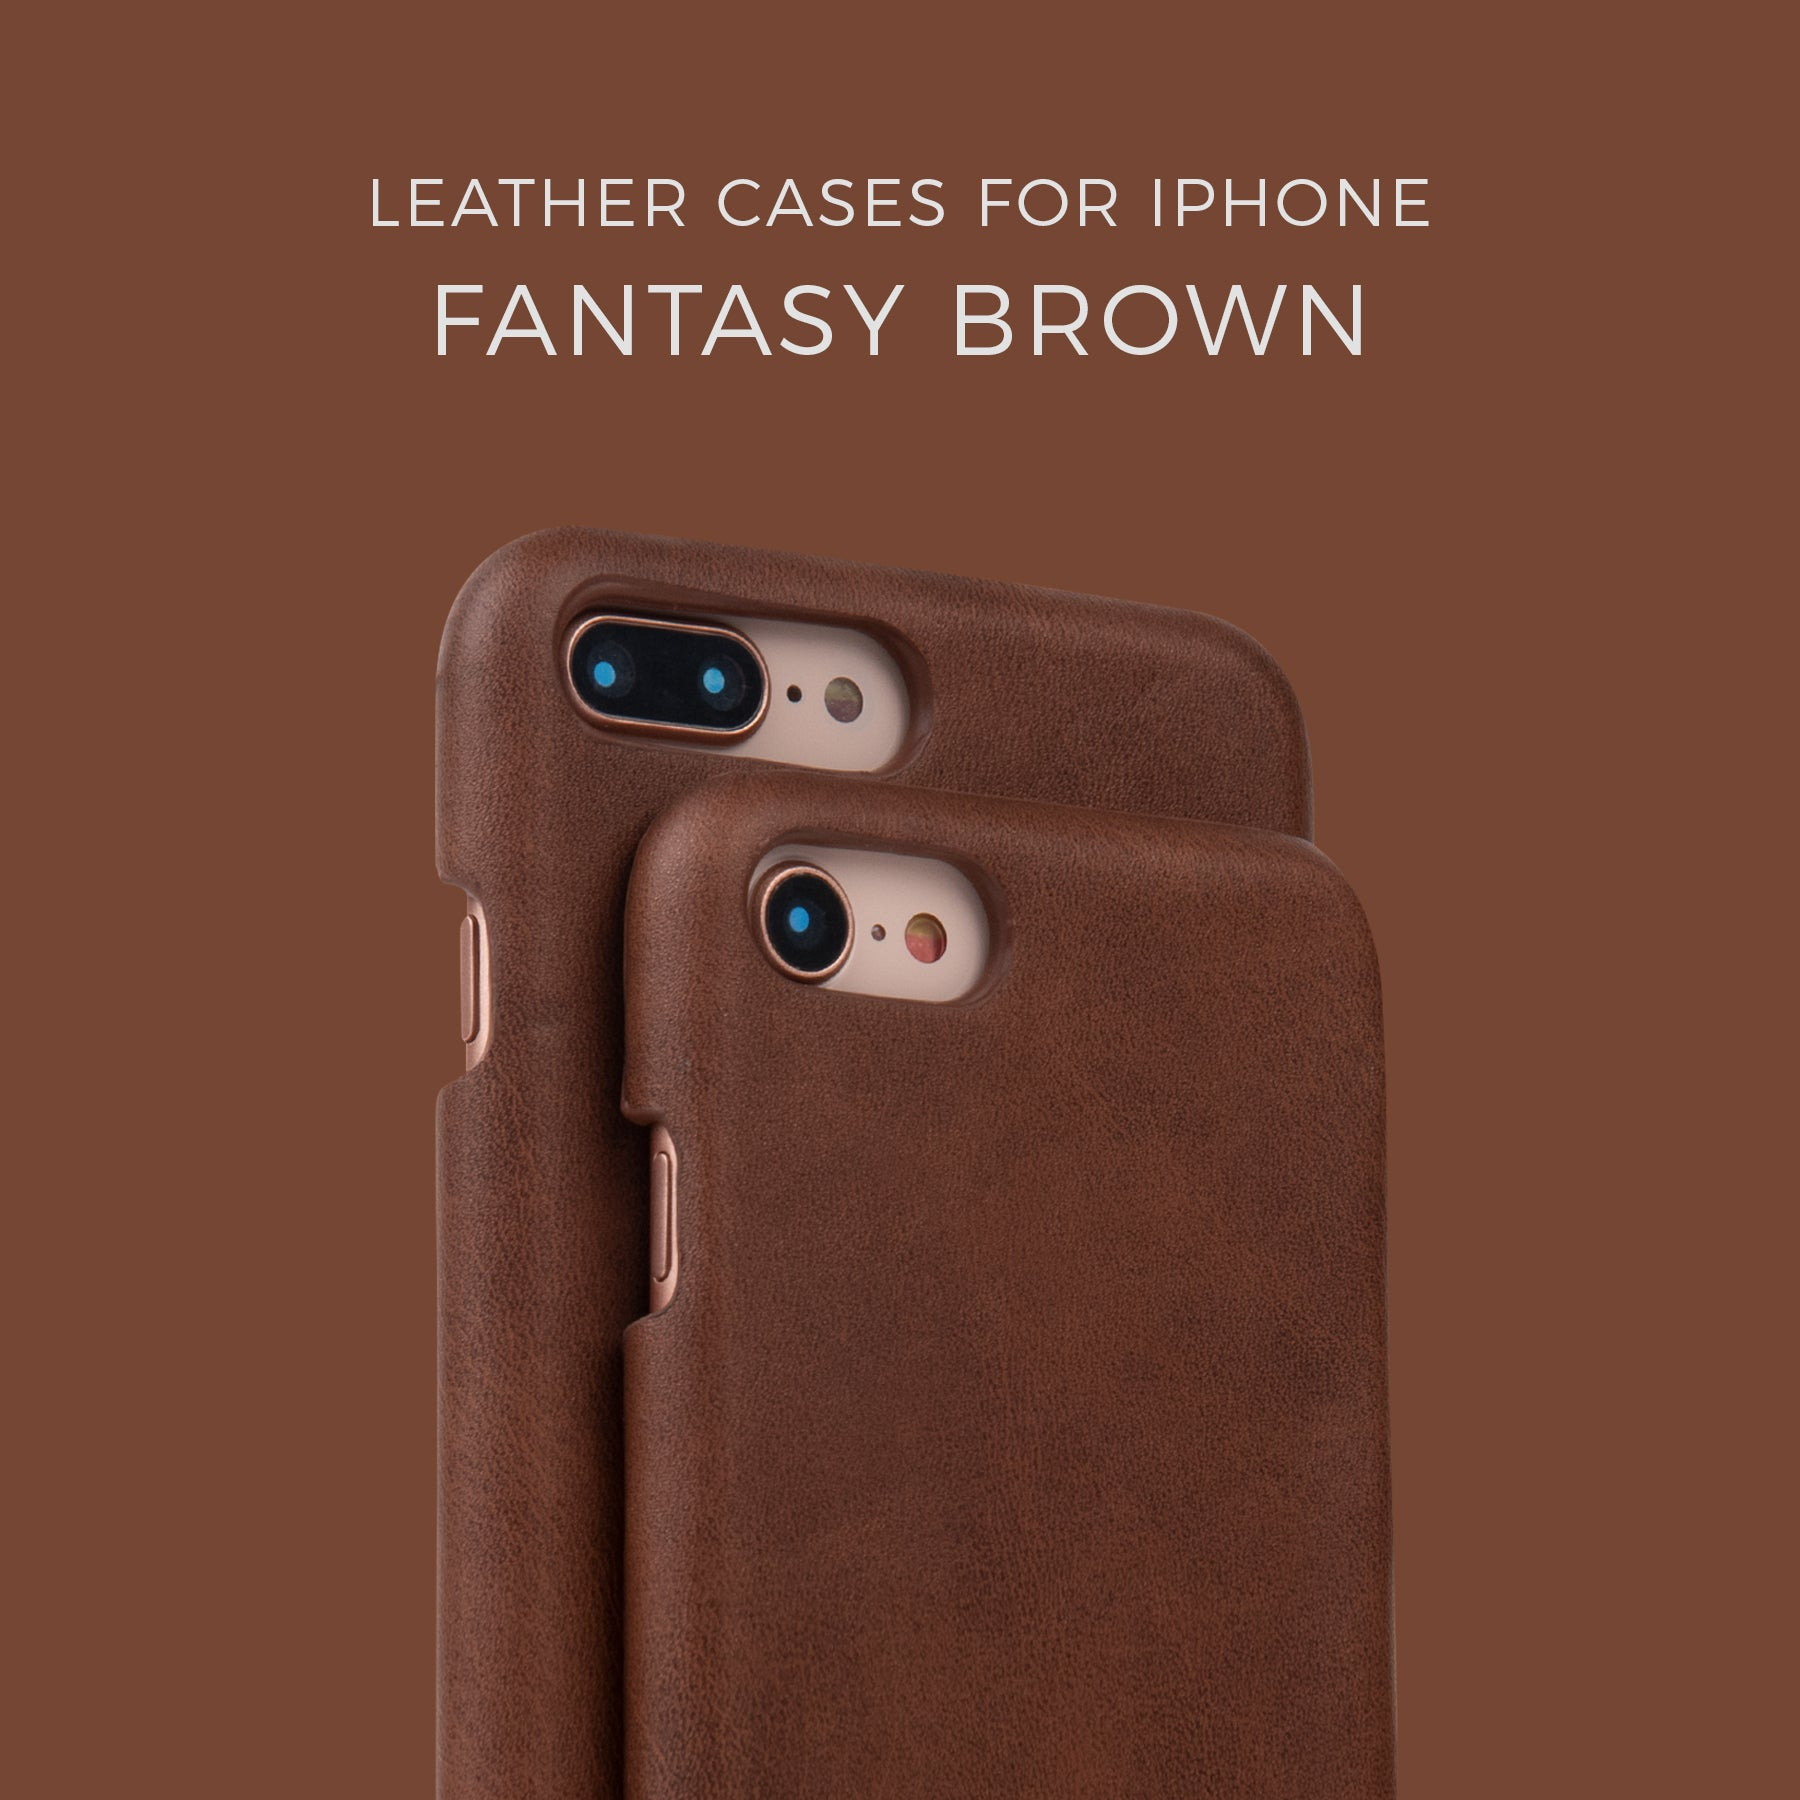 Fantasy Brown Leather Case